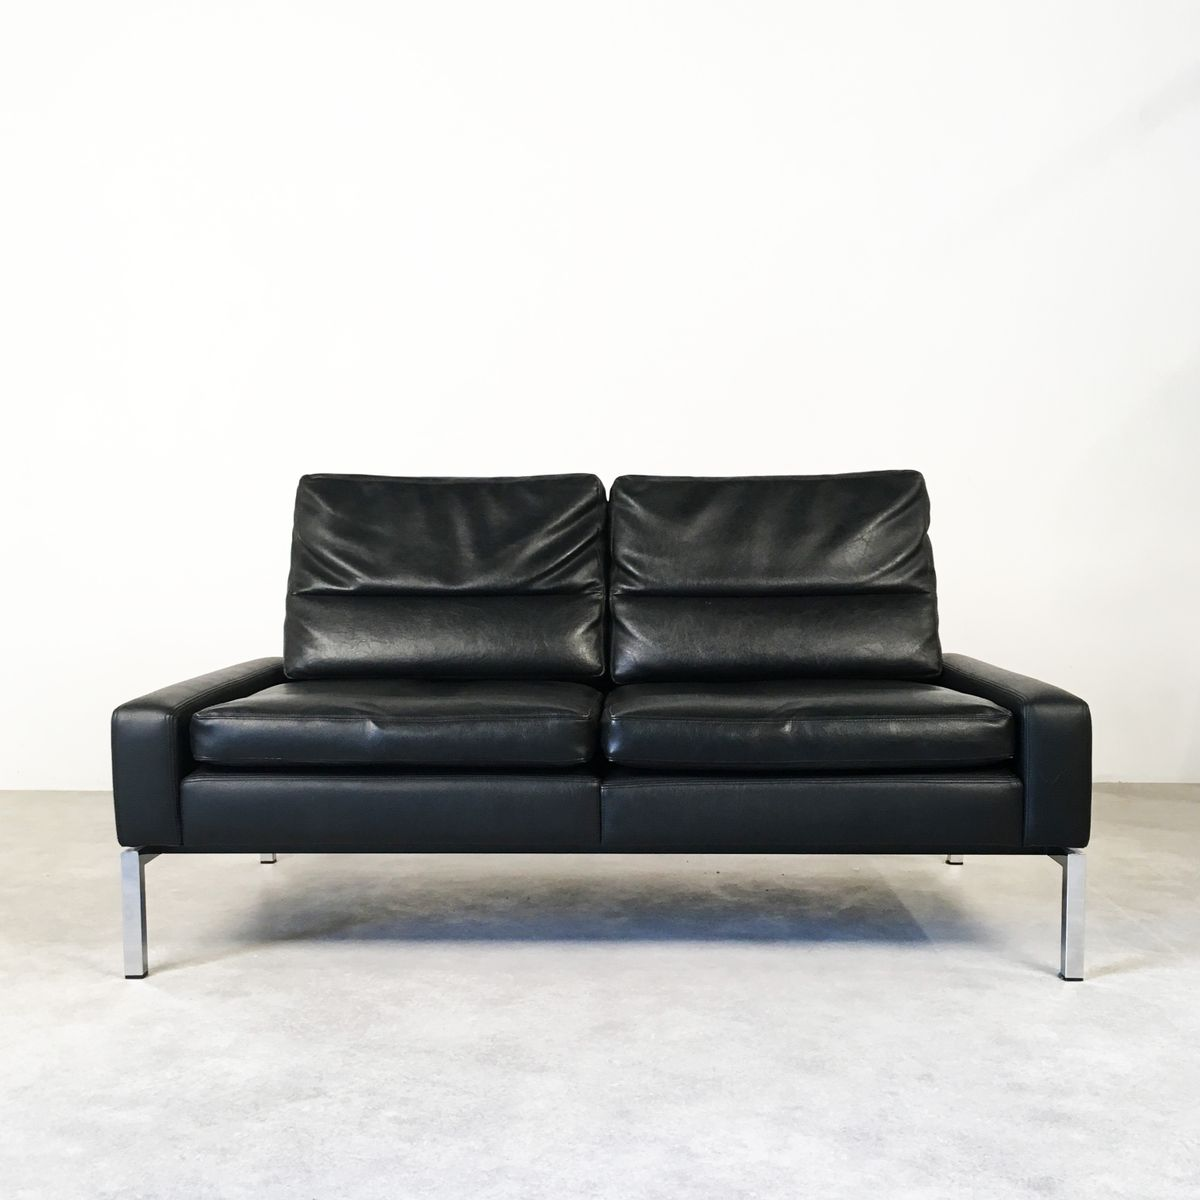 Sofa by hans peter piel for wilkhahn for sale at pamono for Sofas rinconeras piel ofertas